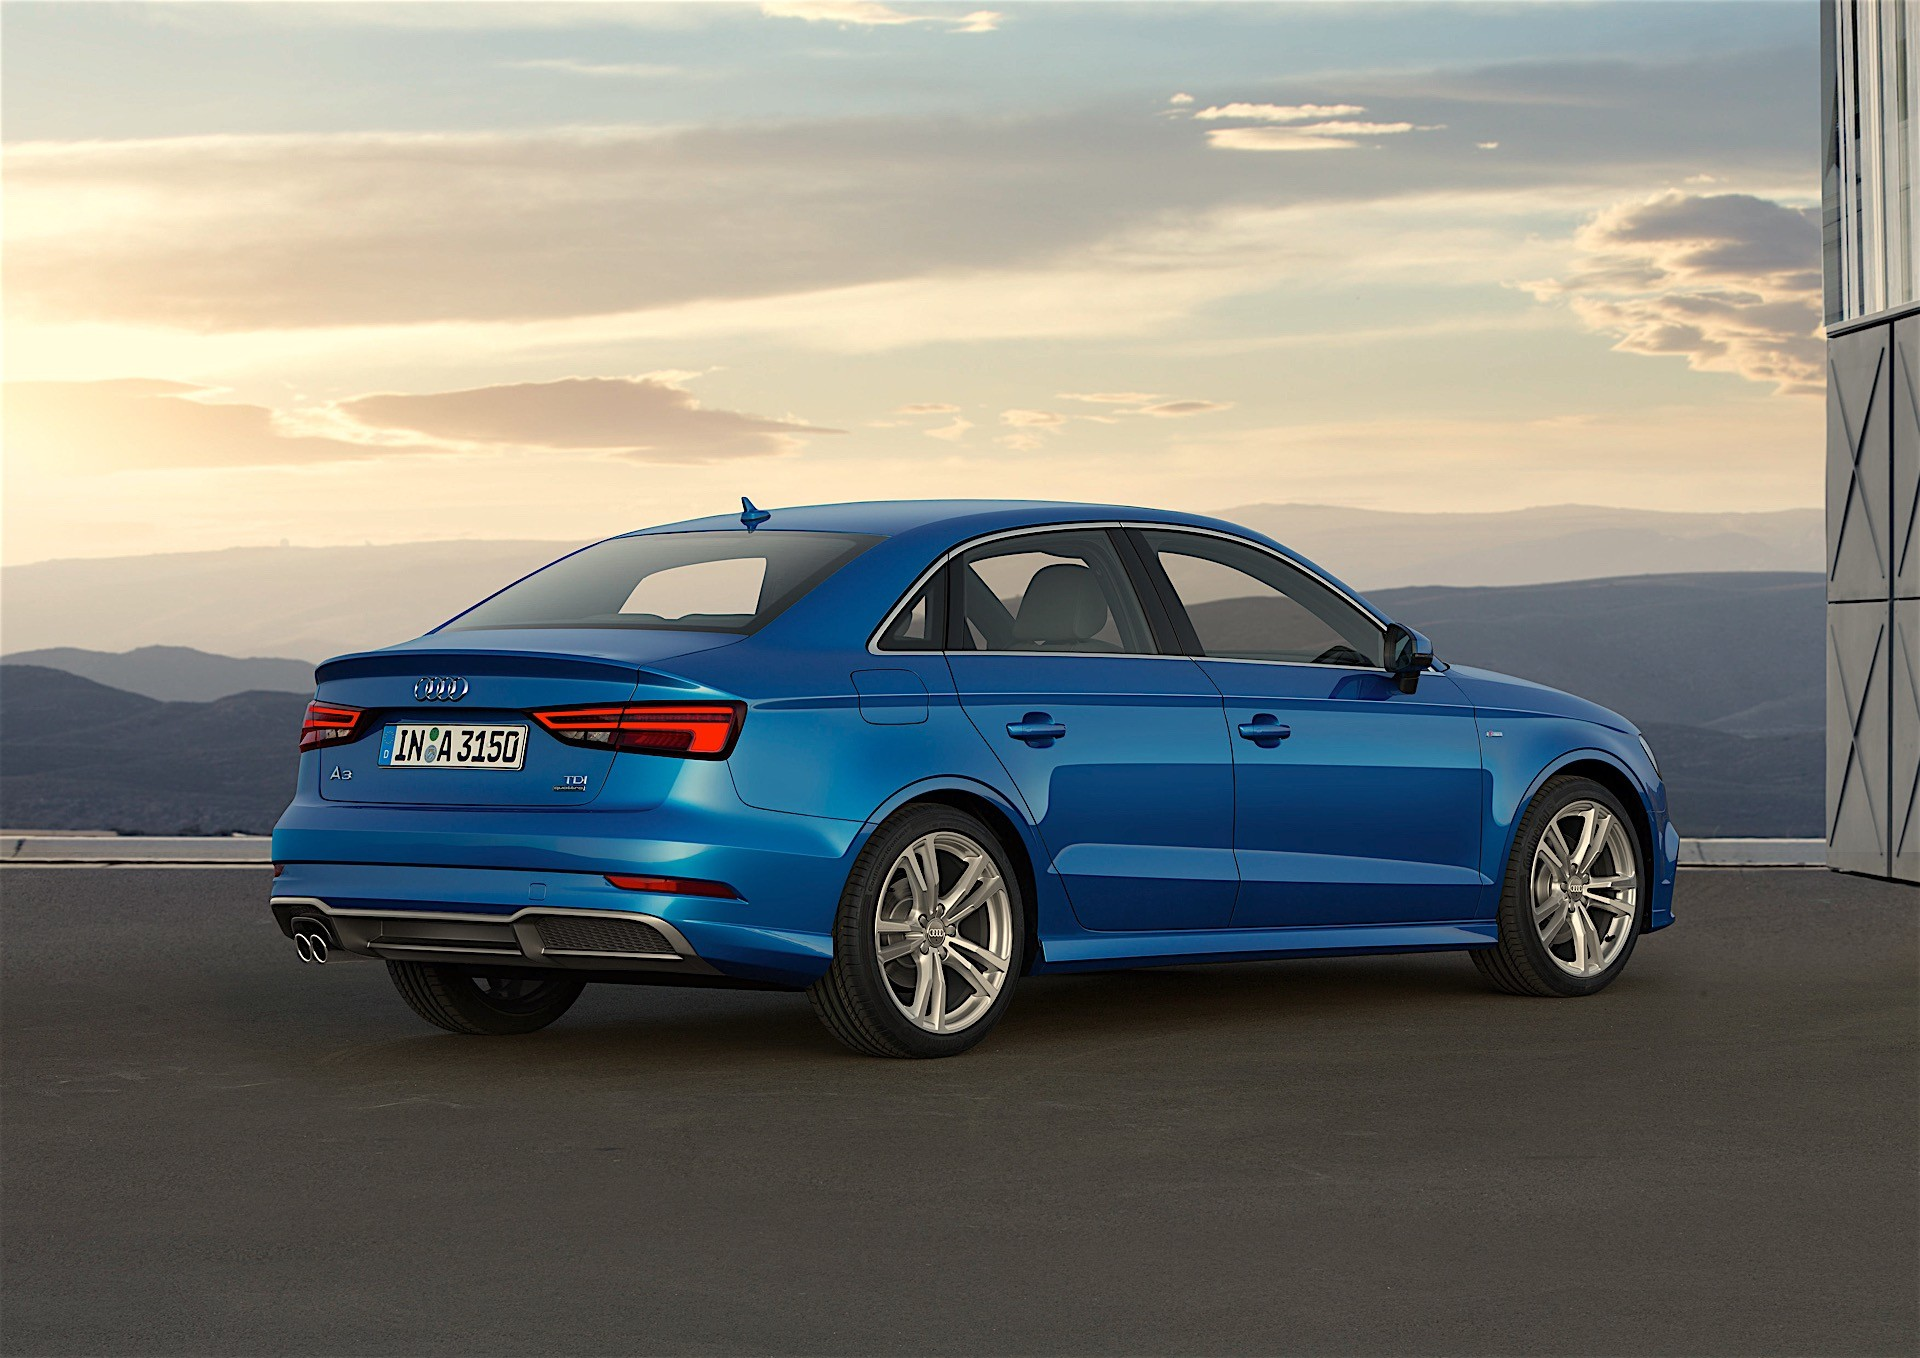 2017 Audi A3 Facelift Configurator Launched in Germany, S3 ...